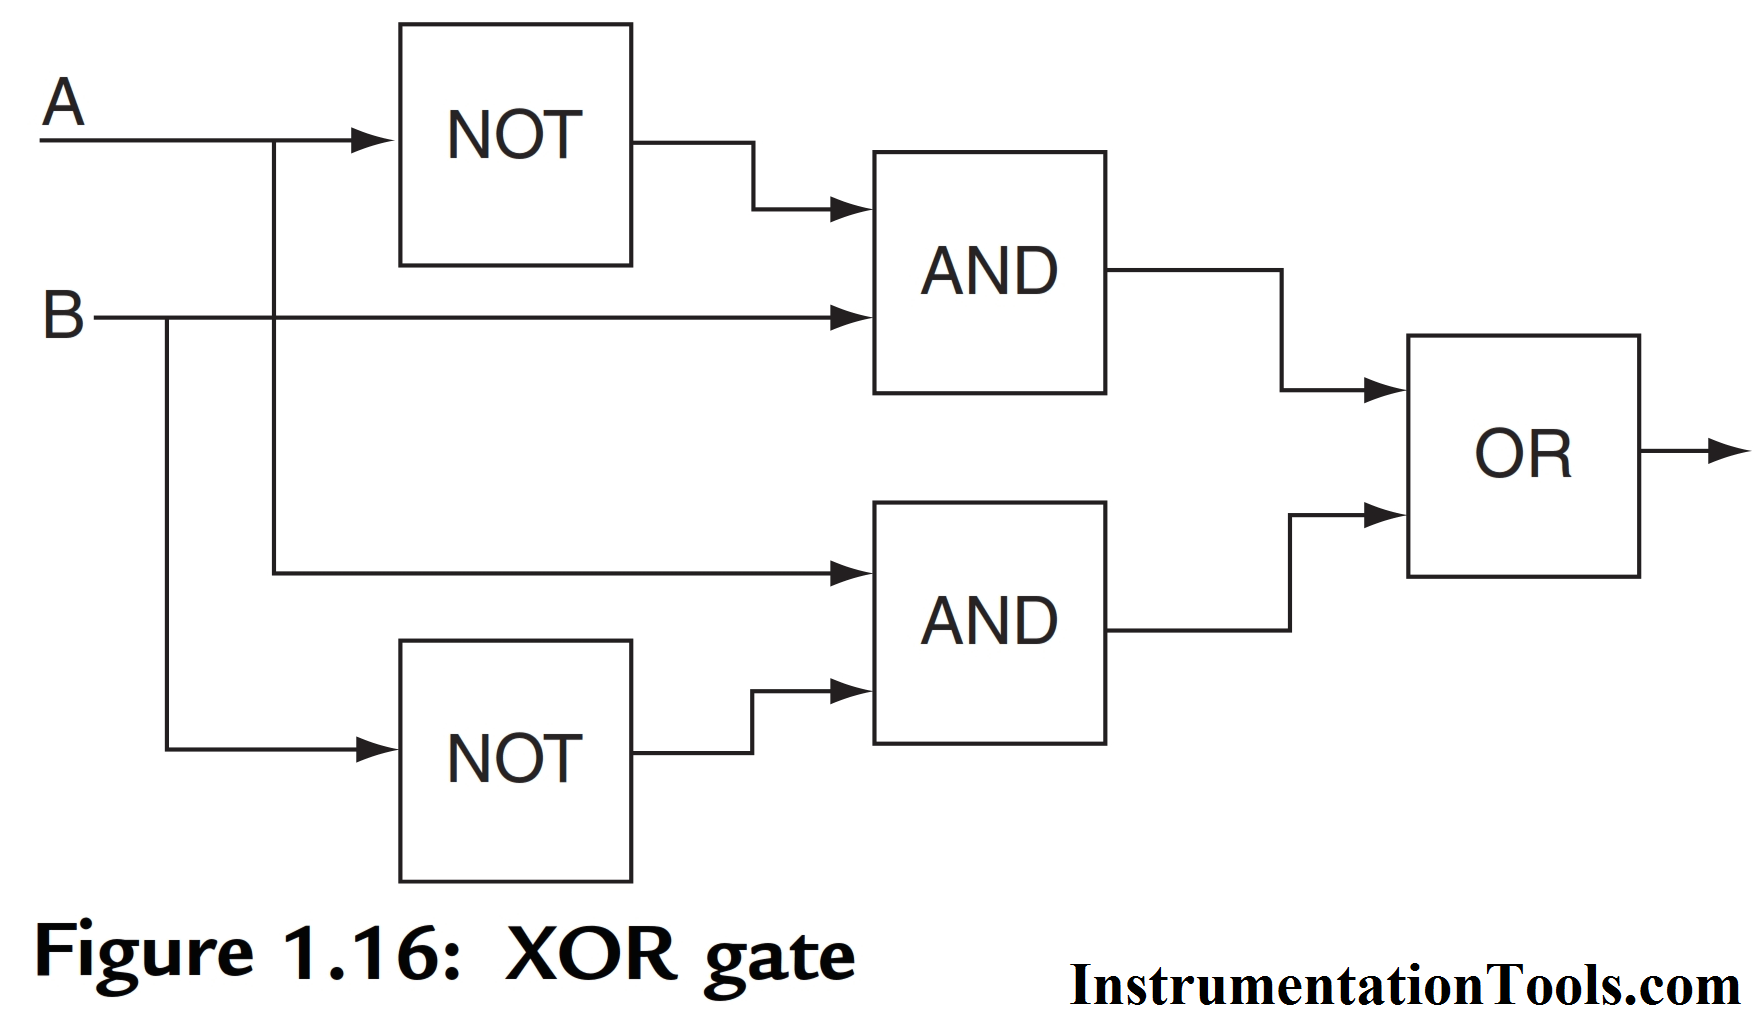 [QNCB_7524]  PLC Logic Functions | PLC Ladder Logic Gates | PLC Commands | Ladder Logic Diagram Nand Gate |  | Instrumentation Tools